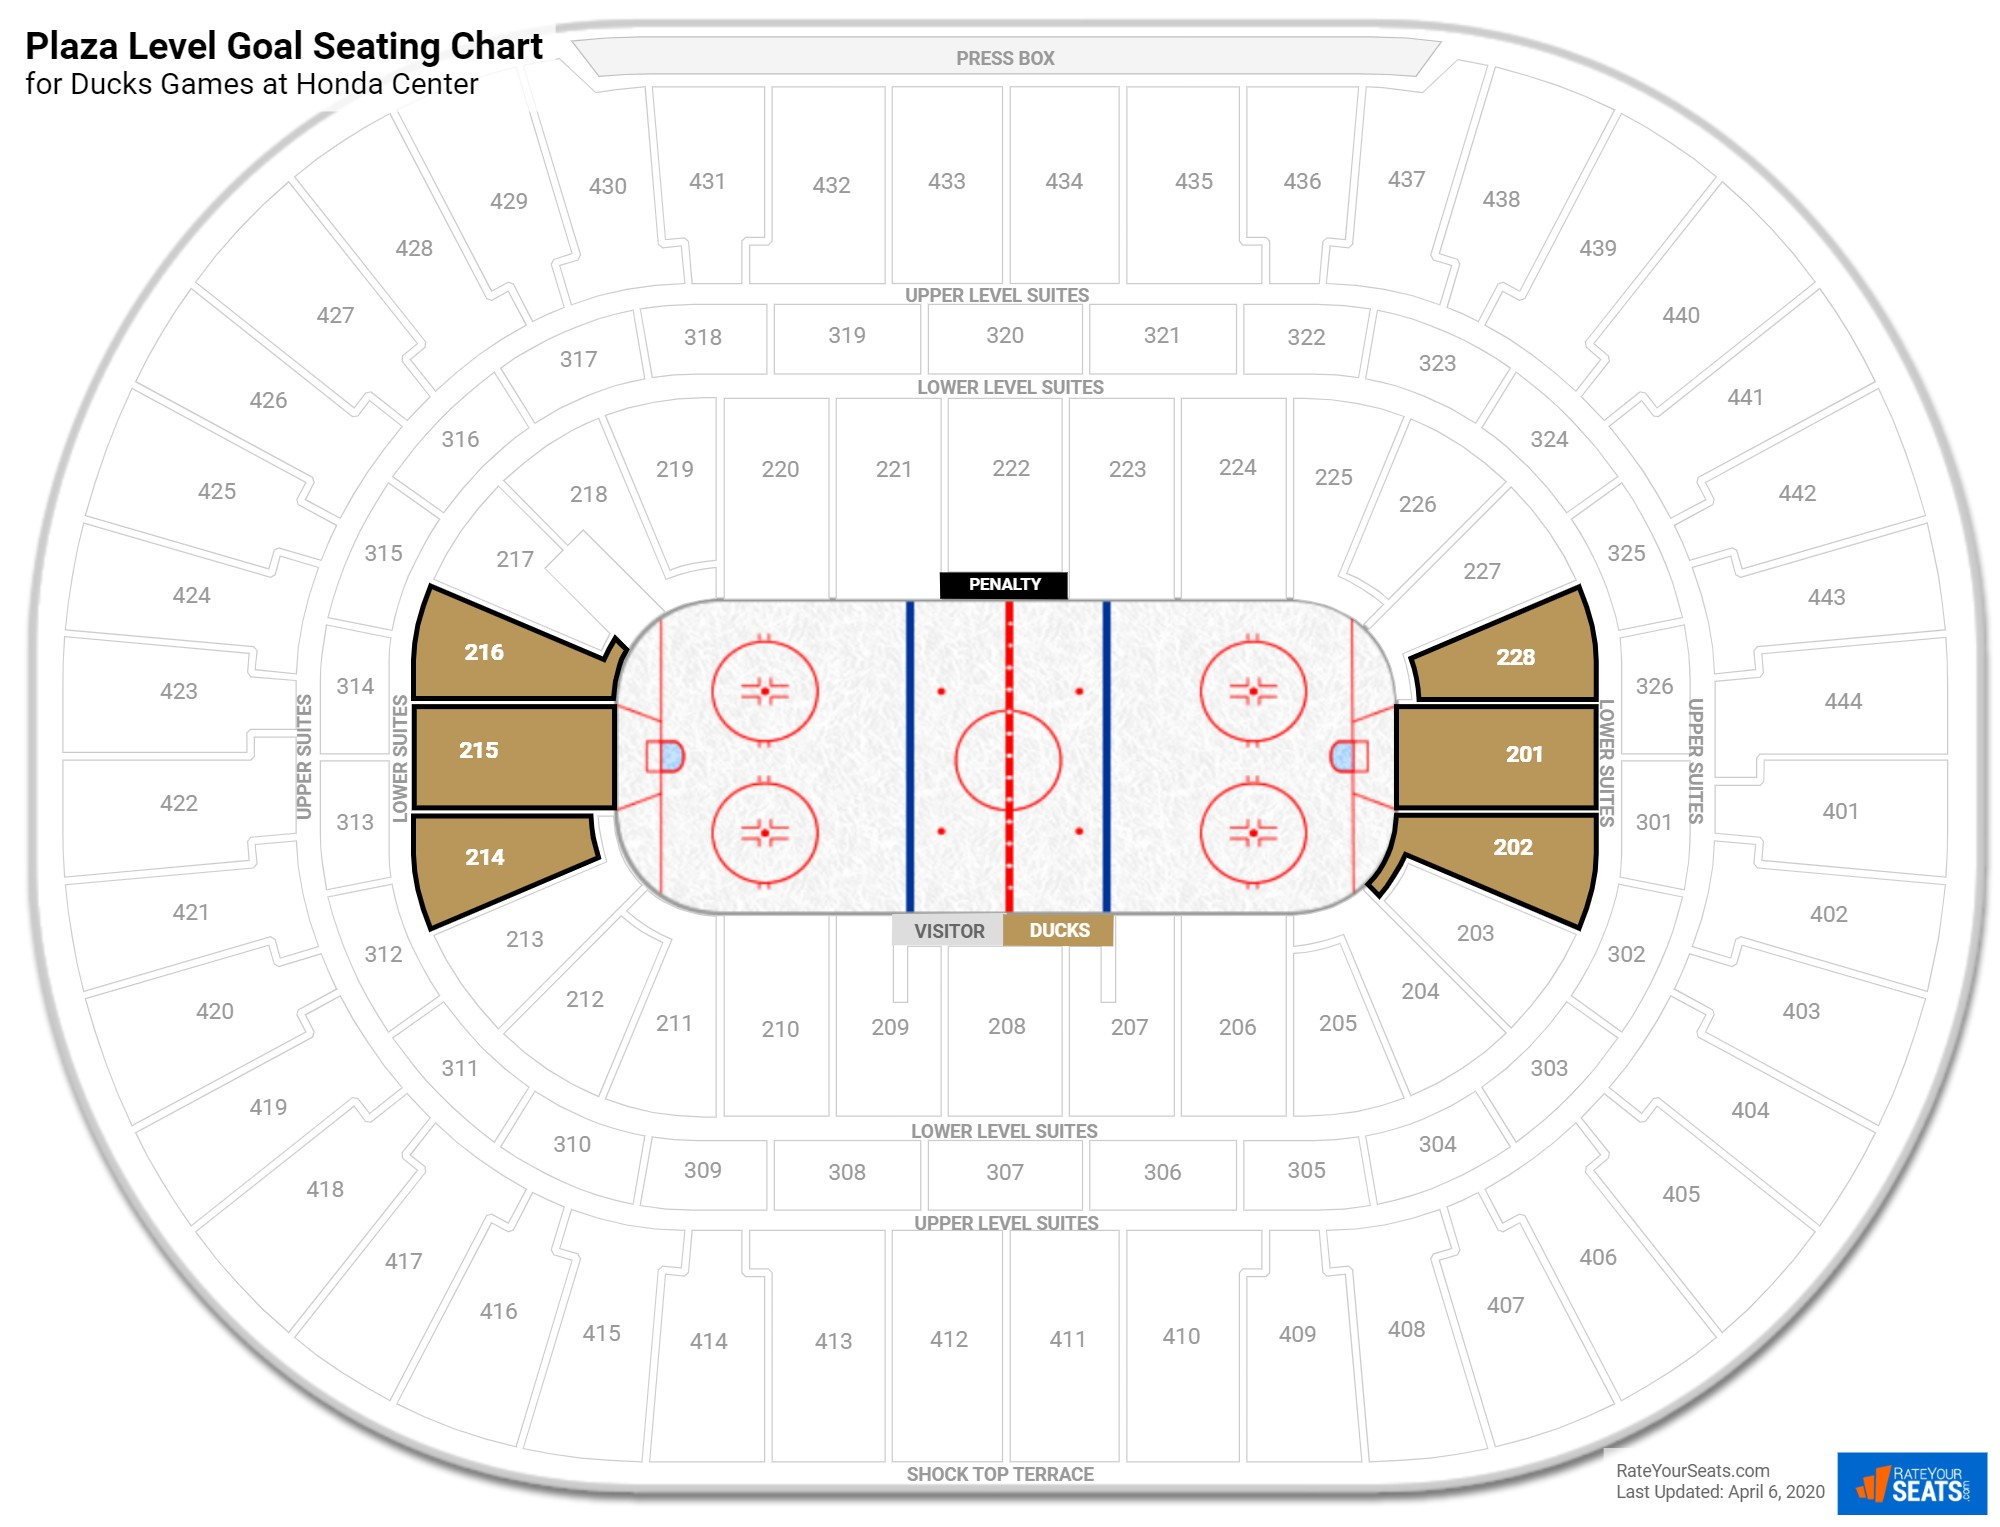 Honda Center Plaza Level Behind the Net seating chart